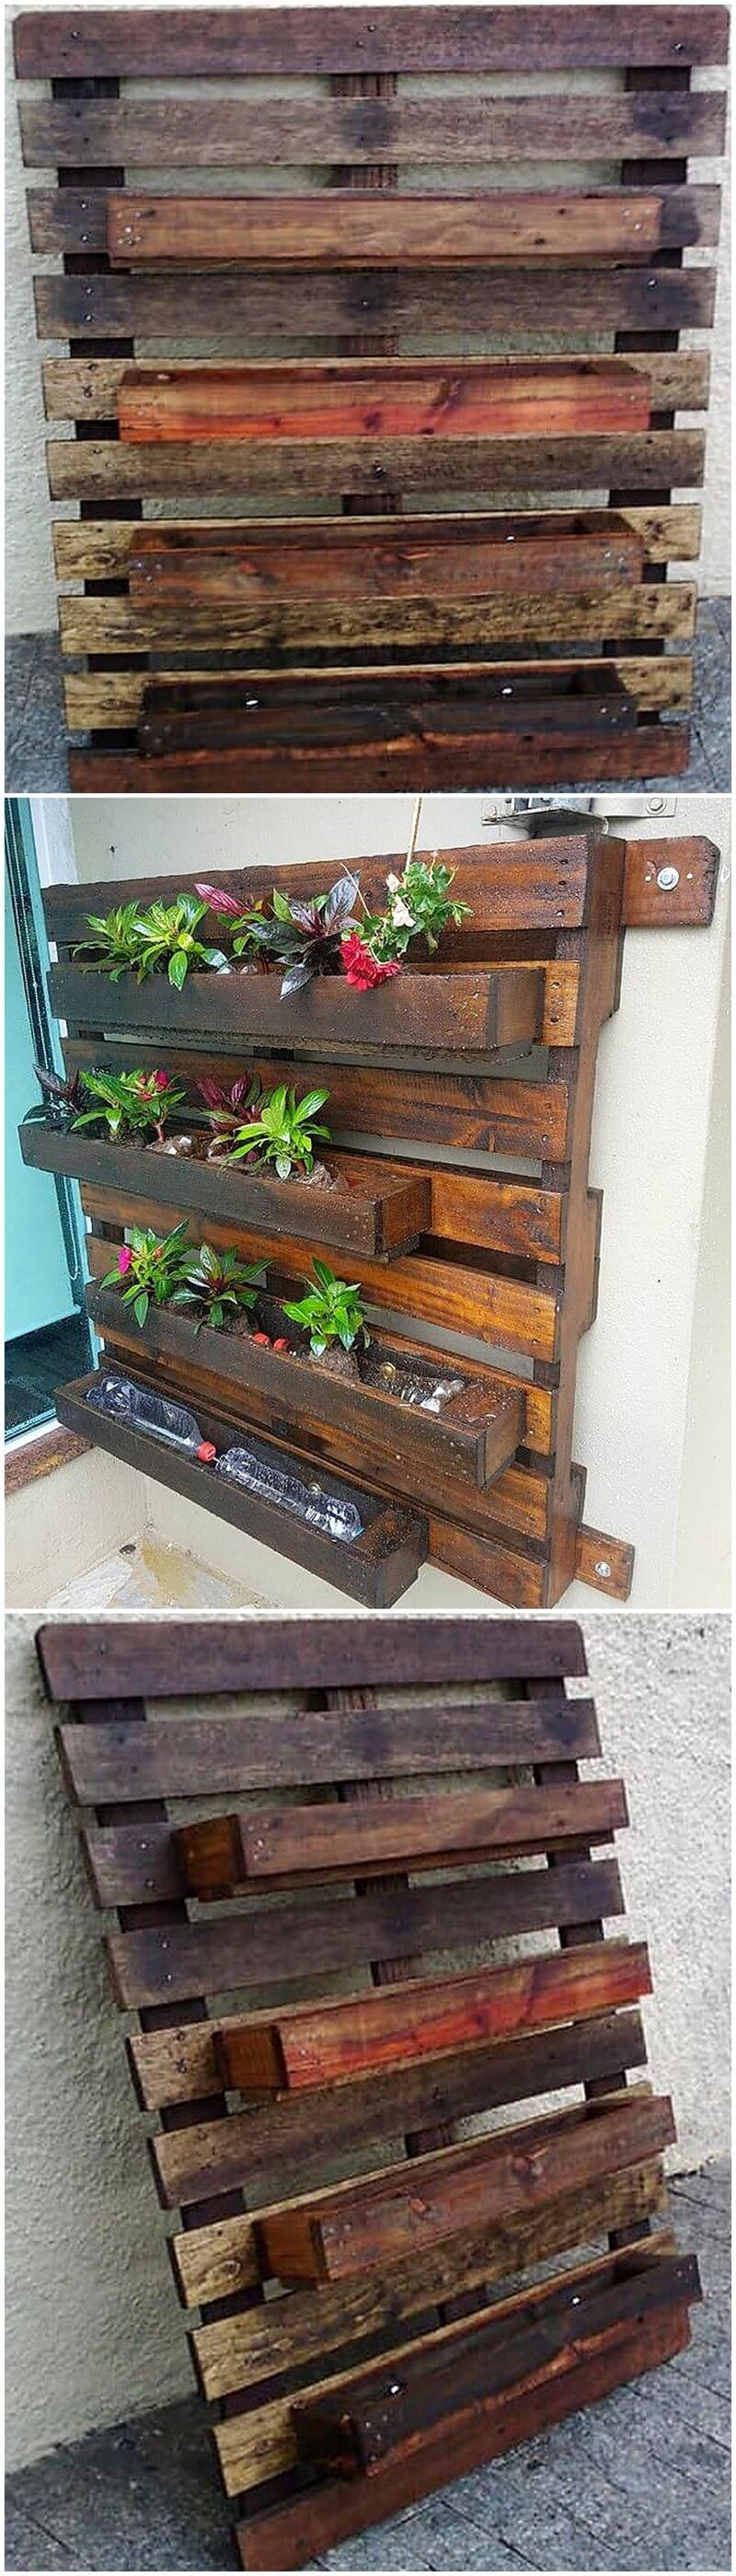 pallets wooden wall planter idea